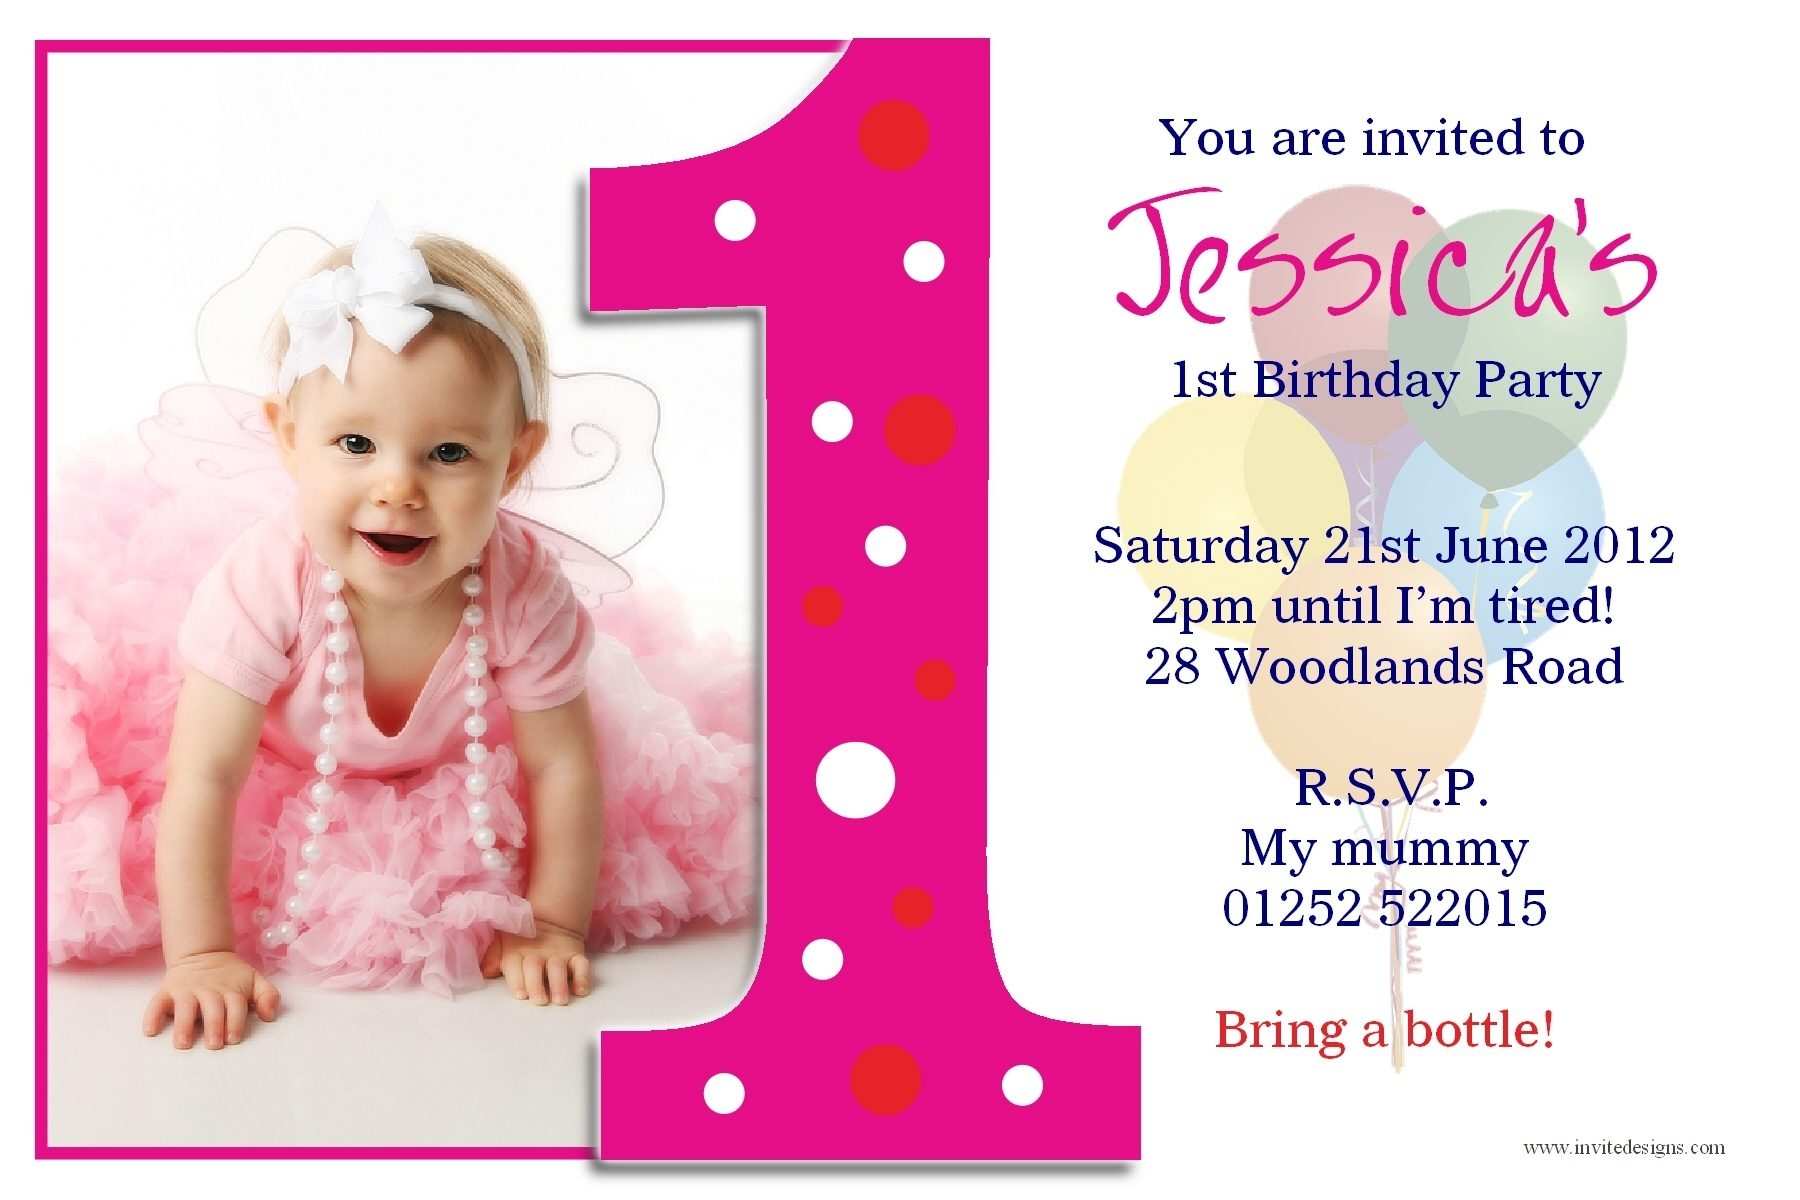 design invitation card for birthday ; 1st-birthday-invitation-card-template-free-download-in-1st-birthday-invitation-card-template-free-download